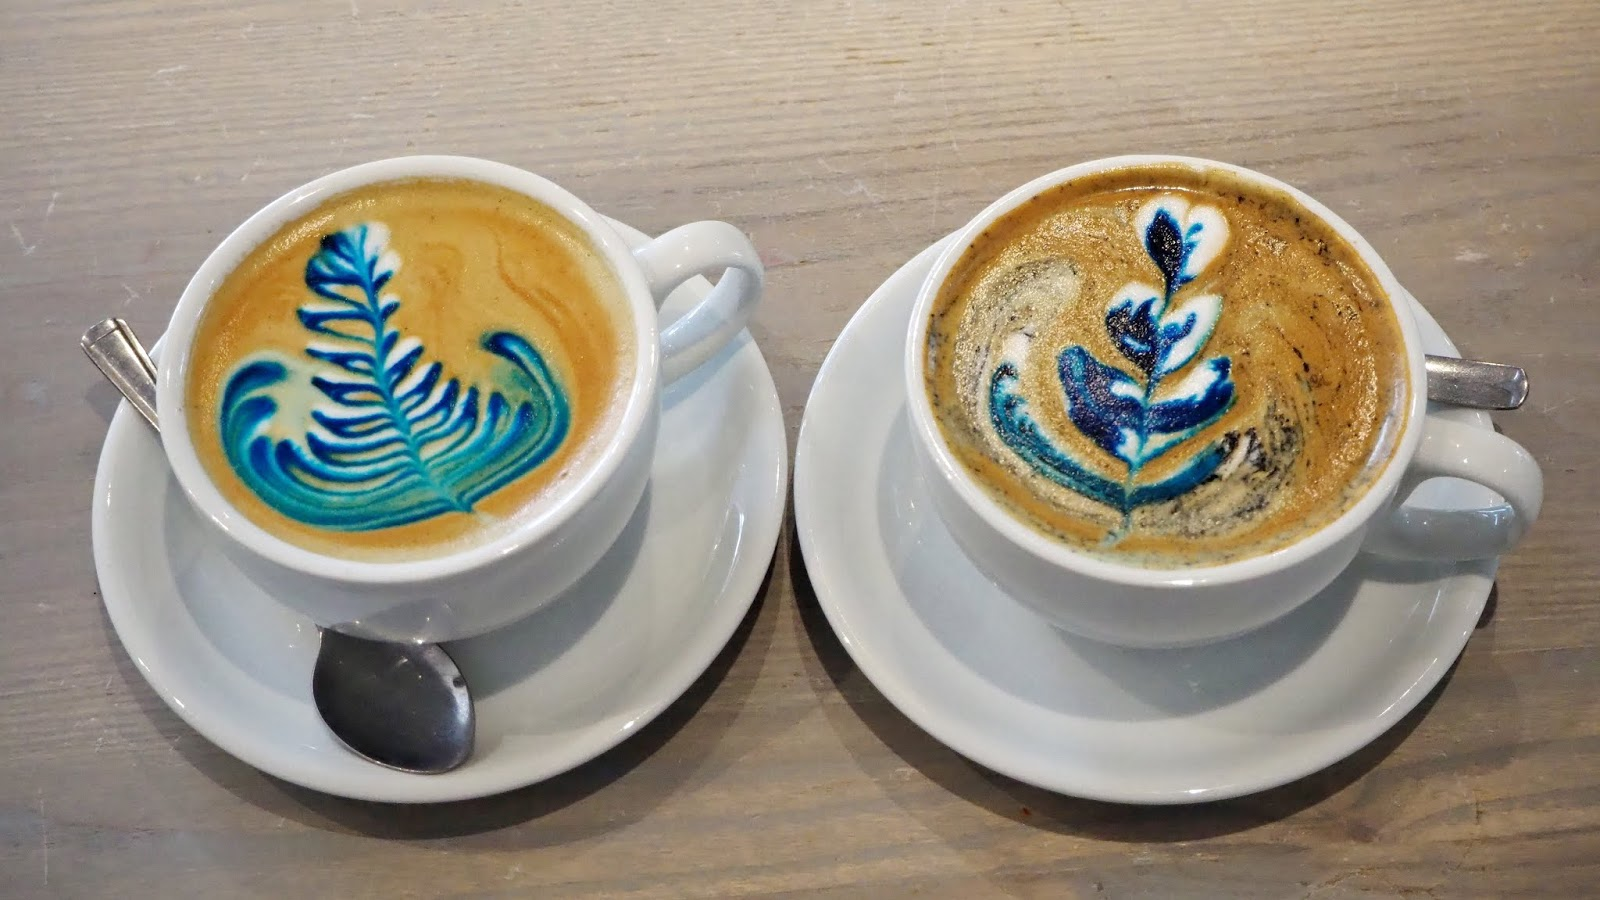 Two rainbow lattes with blue latte art